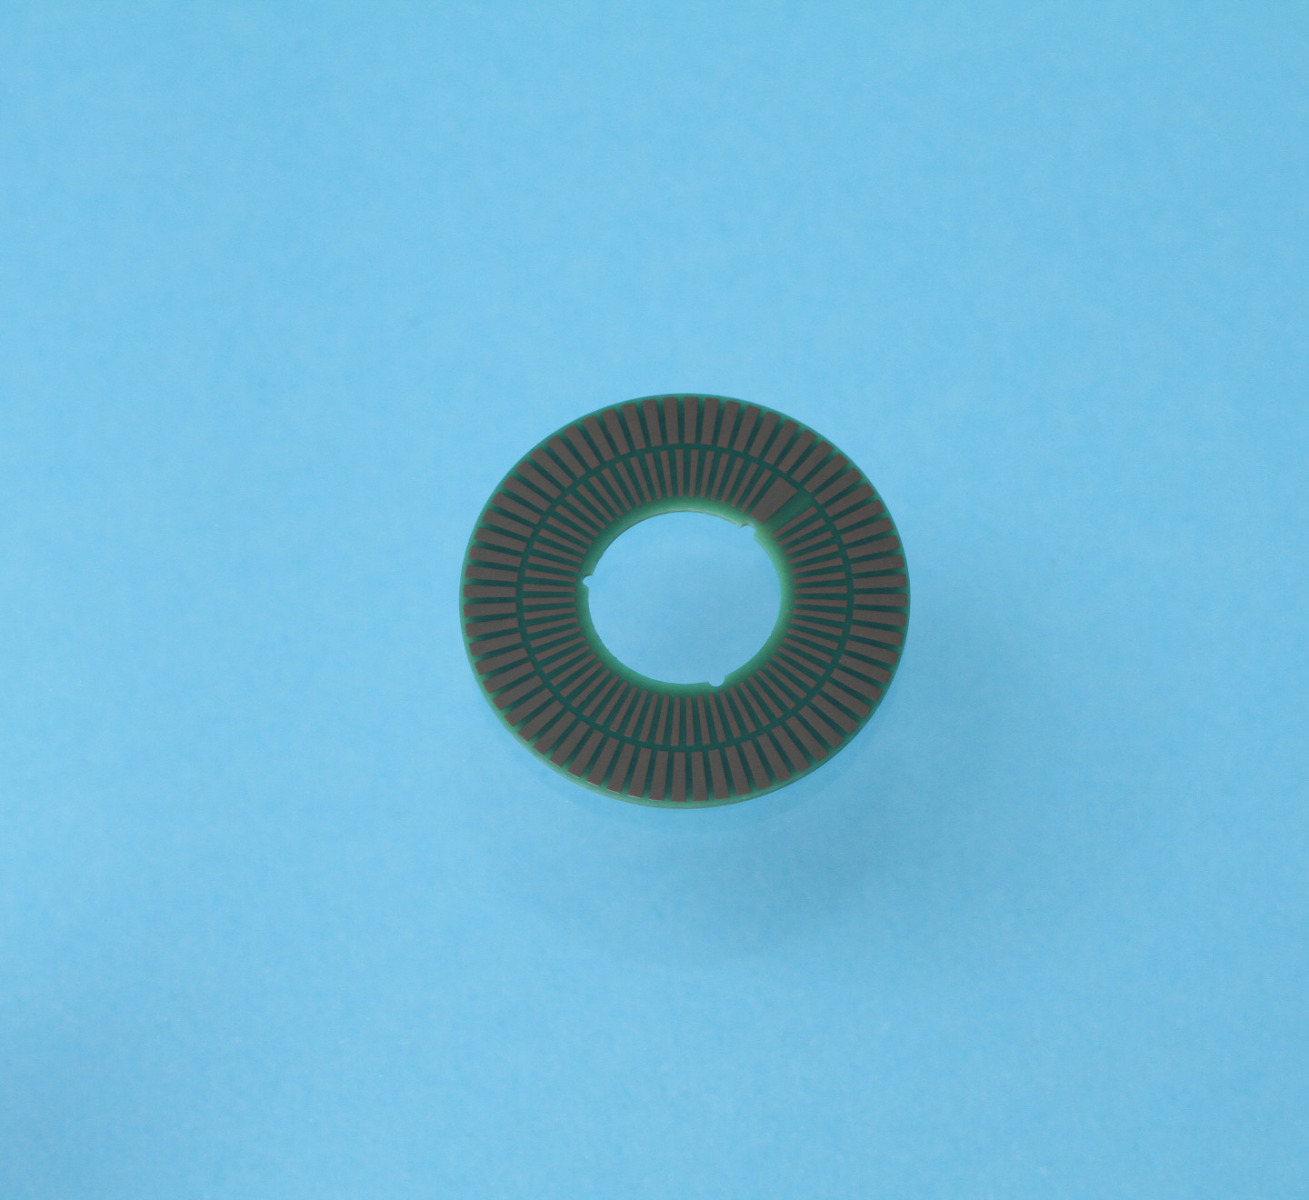 TPCS01 Codewheel with 64 periods, inner diameter 12 mm and outer diameter 28.2 mm for Incremental Encoders ID1102C, ID4501C